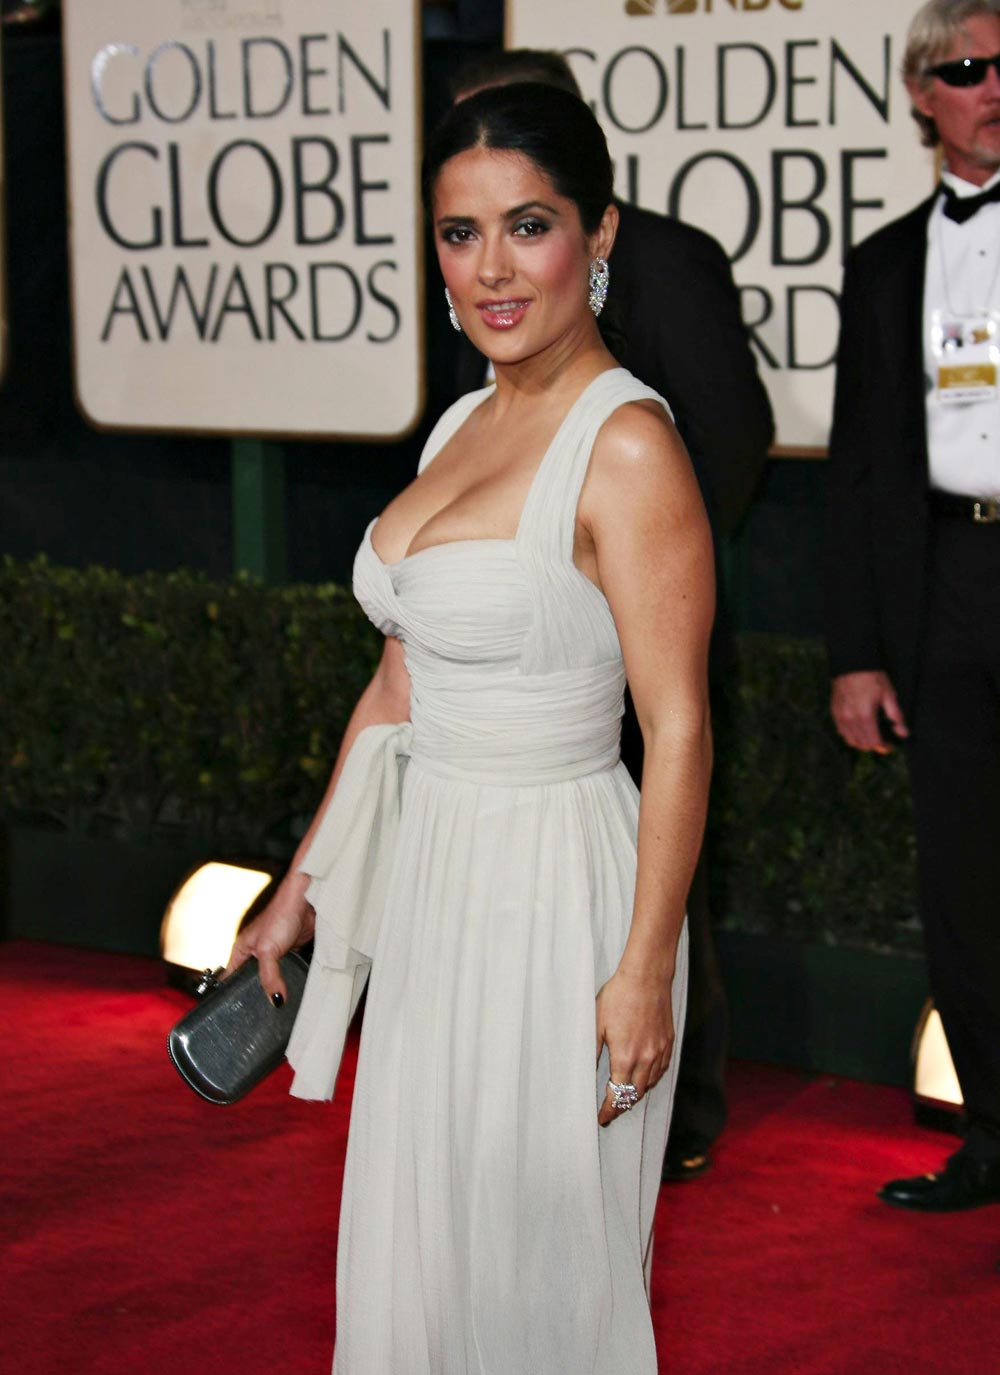 Golden Globes 2018 Red Carpet Fashion Photos: See All